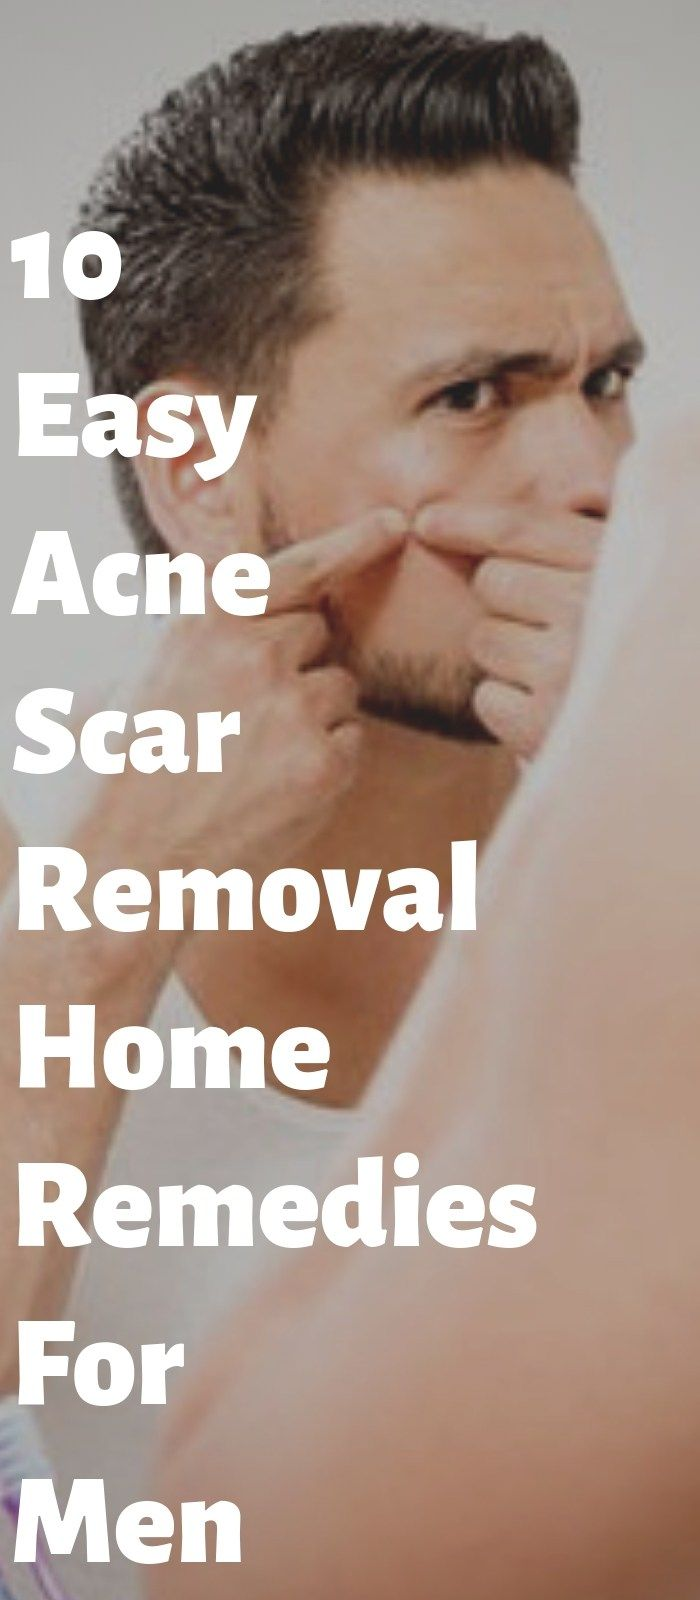 instant acne scar removal tips for men to remember menus